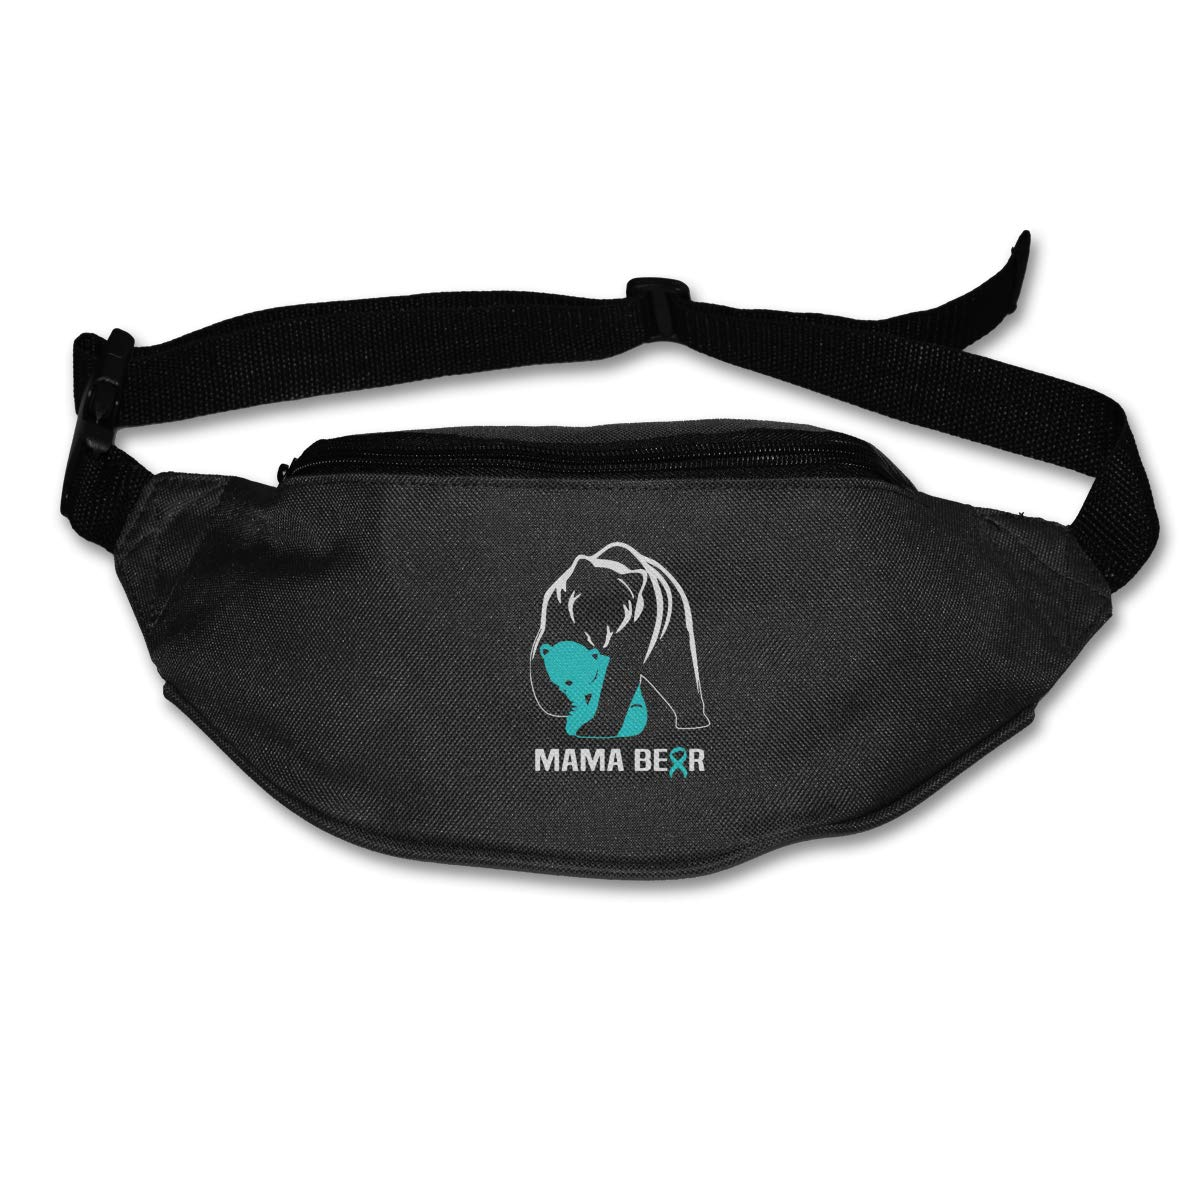 Mom Mama Bear Sport Waist Pack Fanny Pack Adjustable For Travel